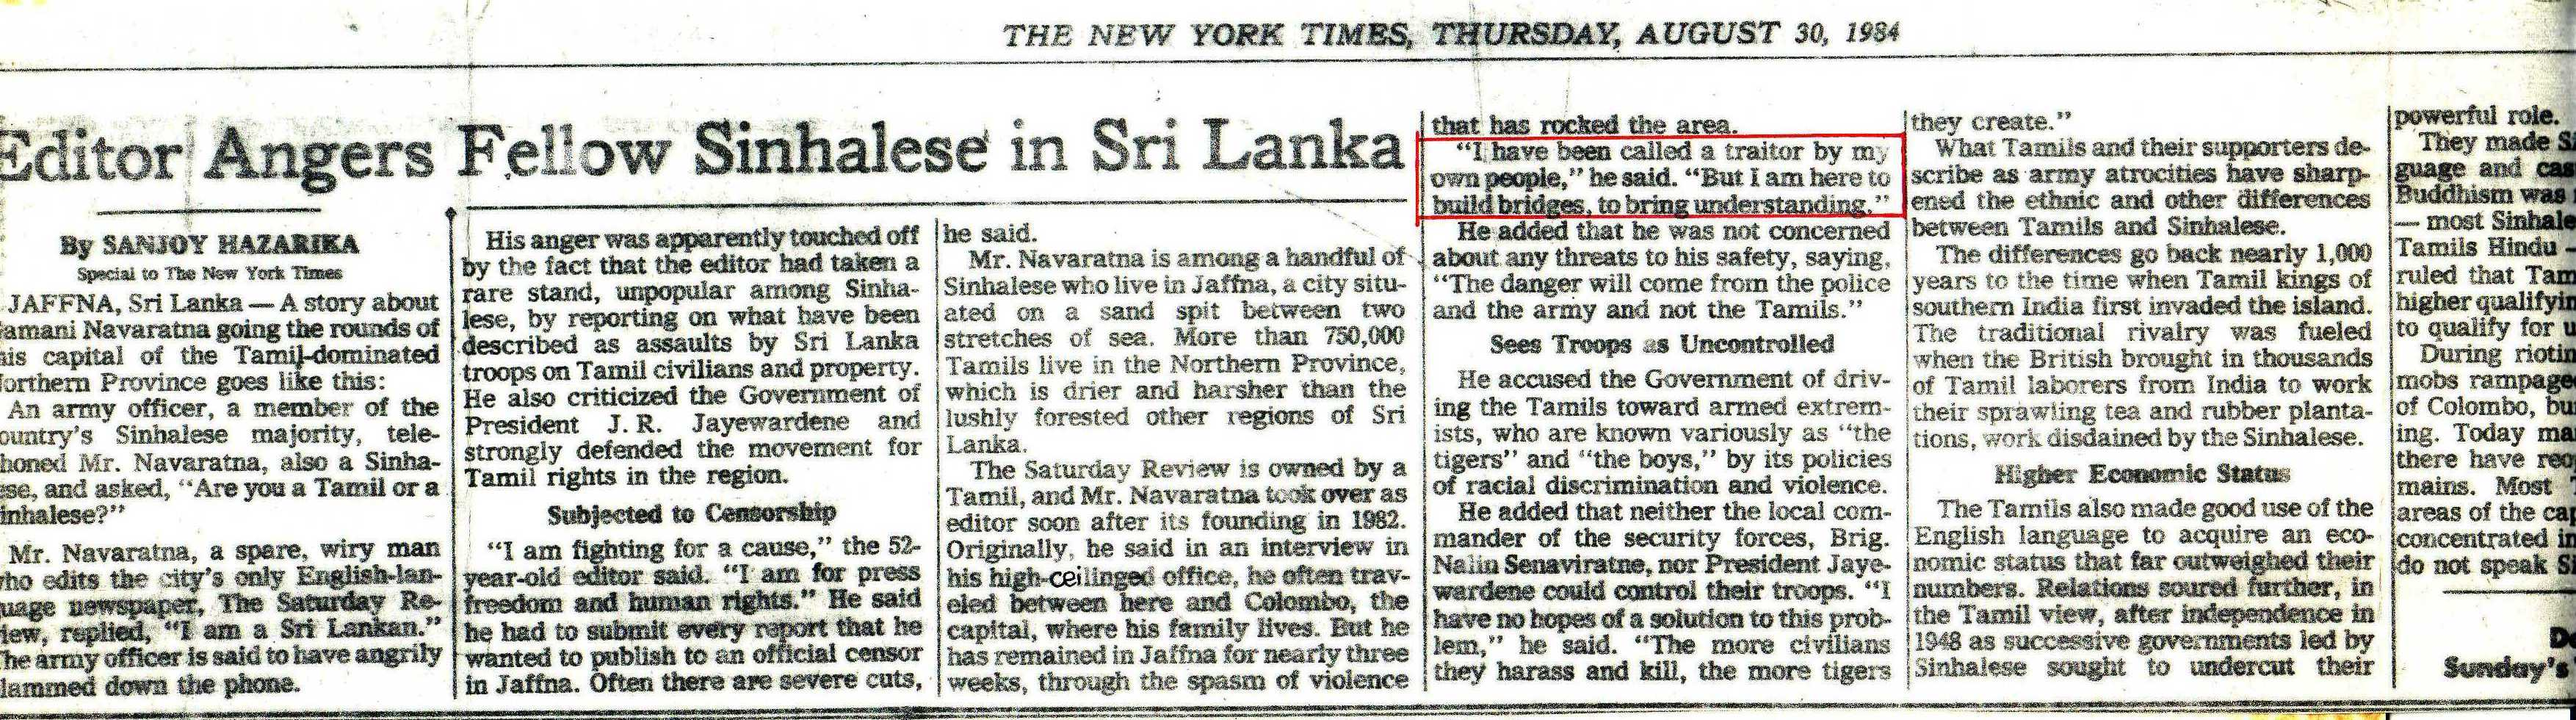 Gamini Navaratne covered in NY Times 1984 Aug 30